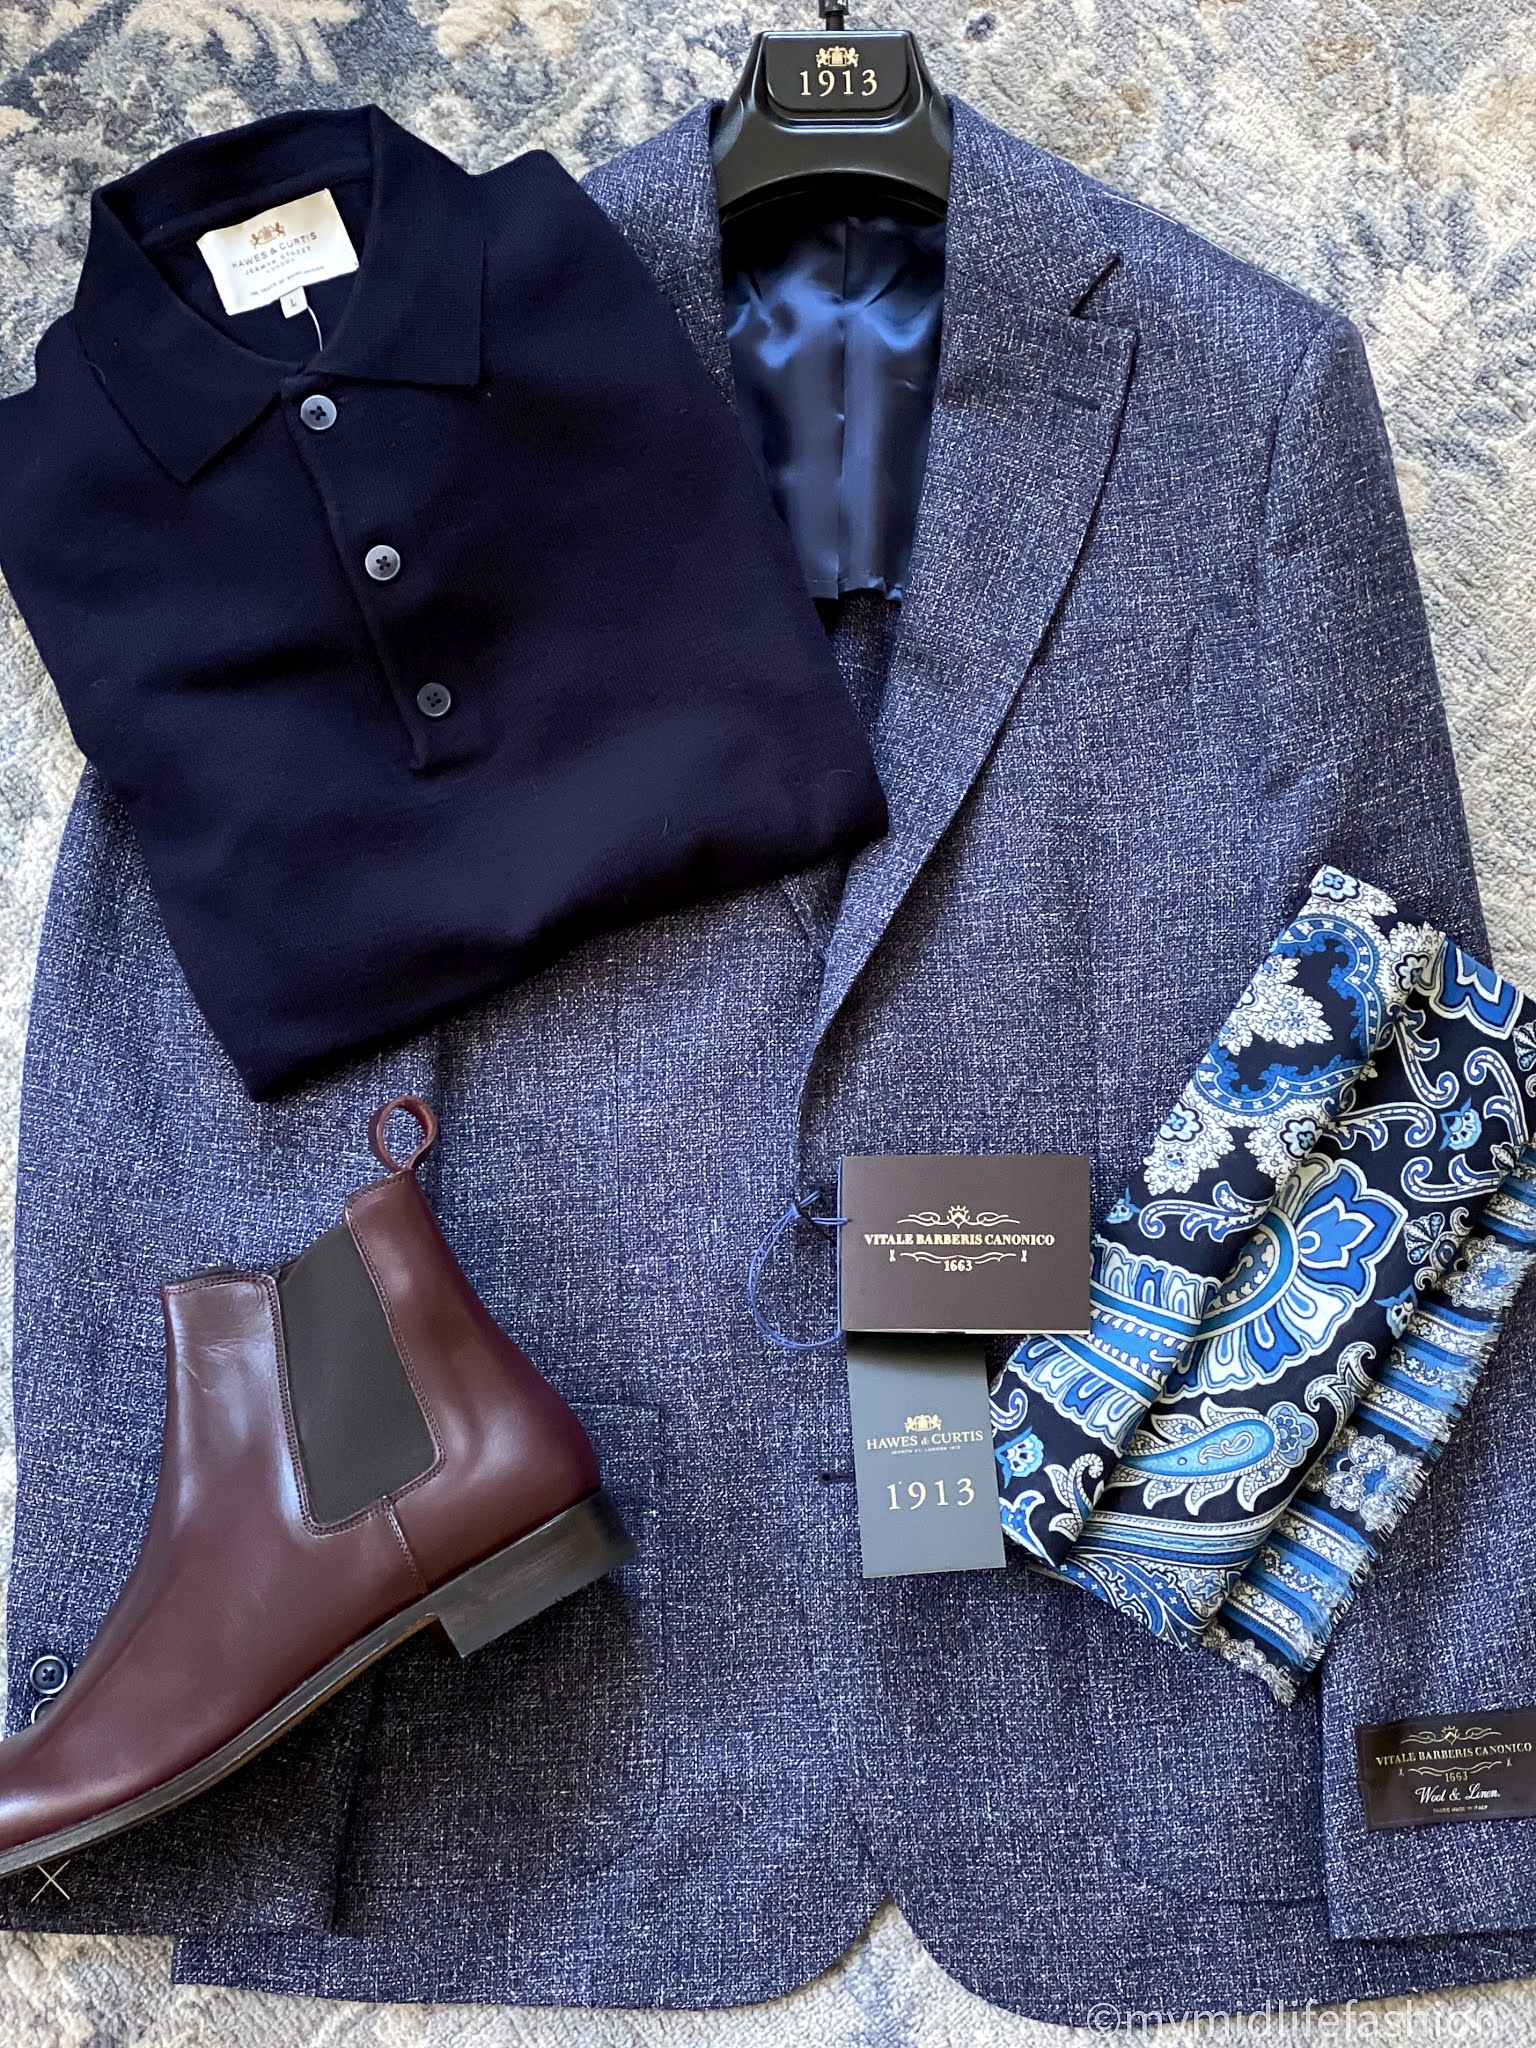 my midlife fashion, hawes and curtain Italian wool and linen blazer, hawes and Curtis merino wool polo neck jumper, hawes and Curtis mens burgundy leather Chelsea boot, hawes and Curtis navy and blue big paisley scarf